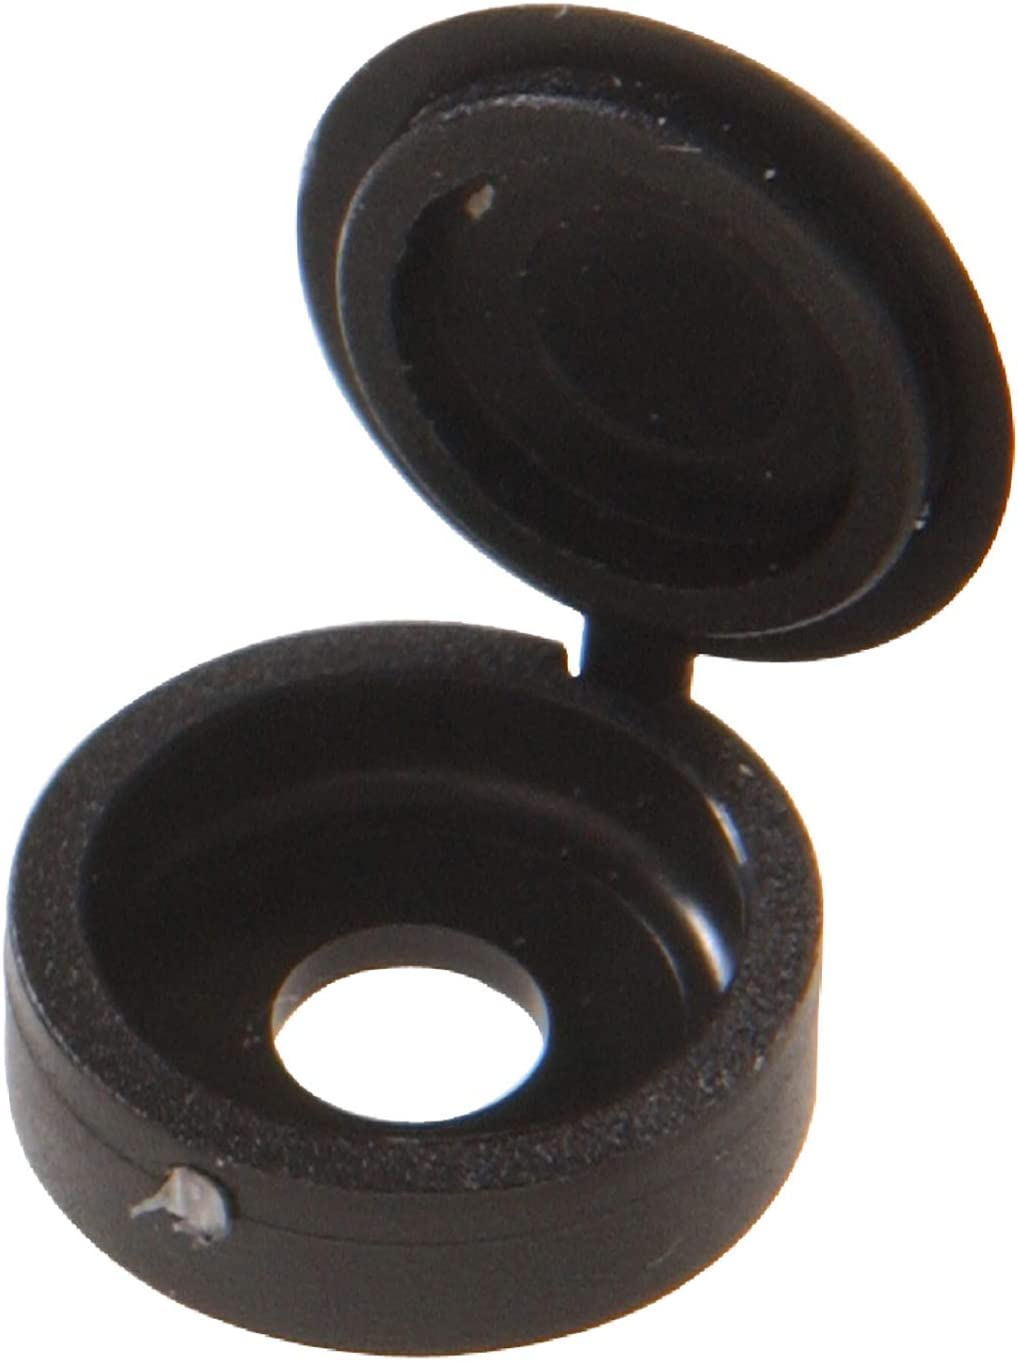 """Hillman 59052 Black Hinged Screw Covers (1/4"""") - 10 pieces"""